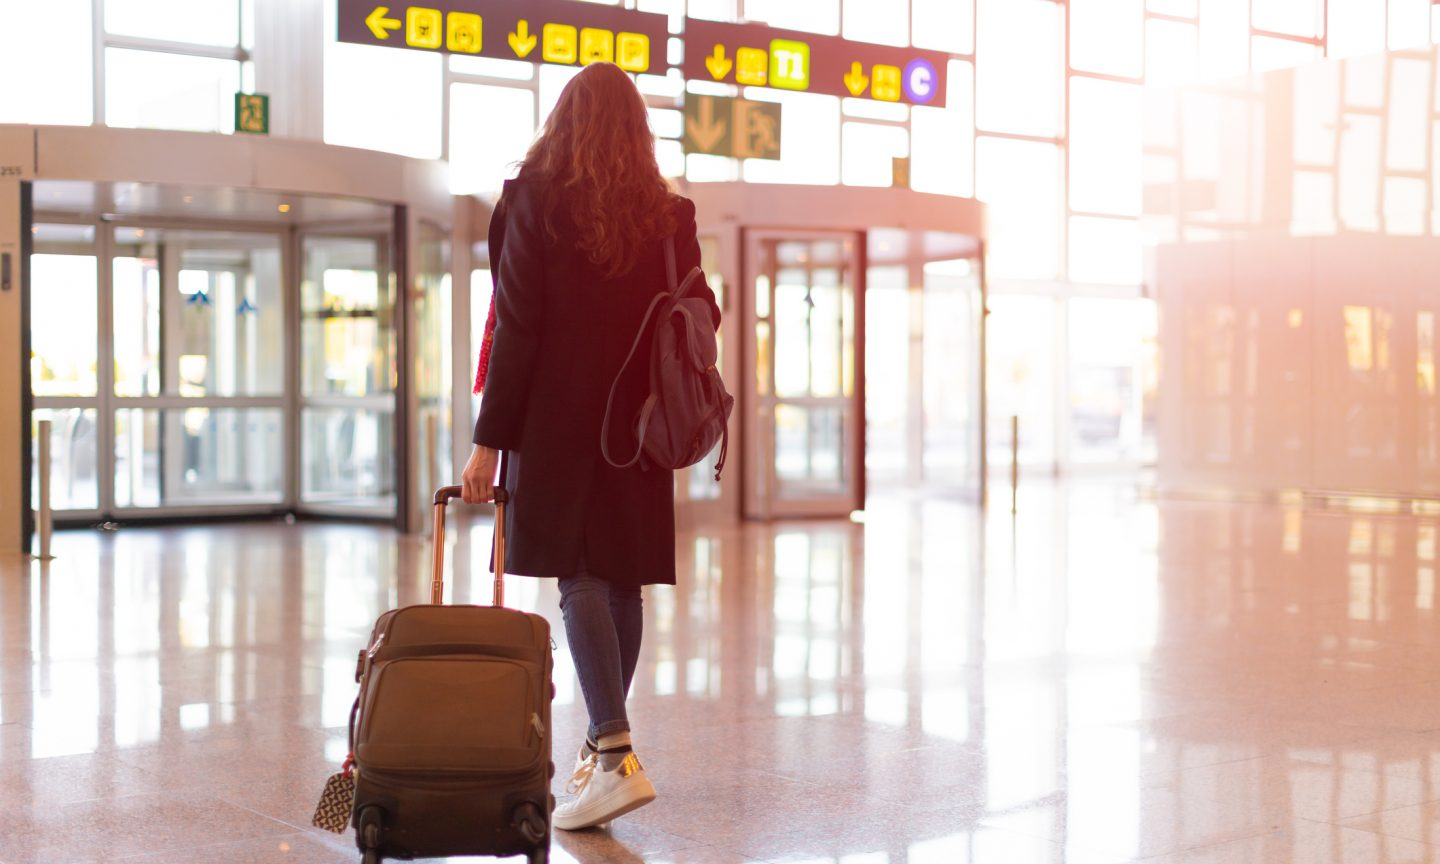 What You Need to Know About Spirit Airlines Fees - NerdWallet